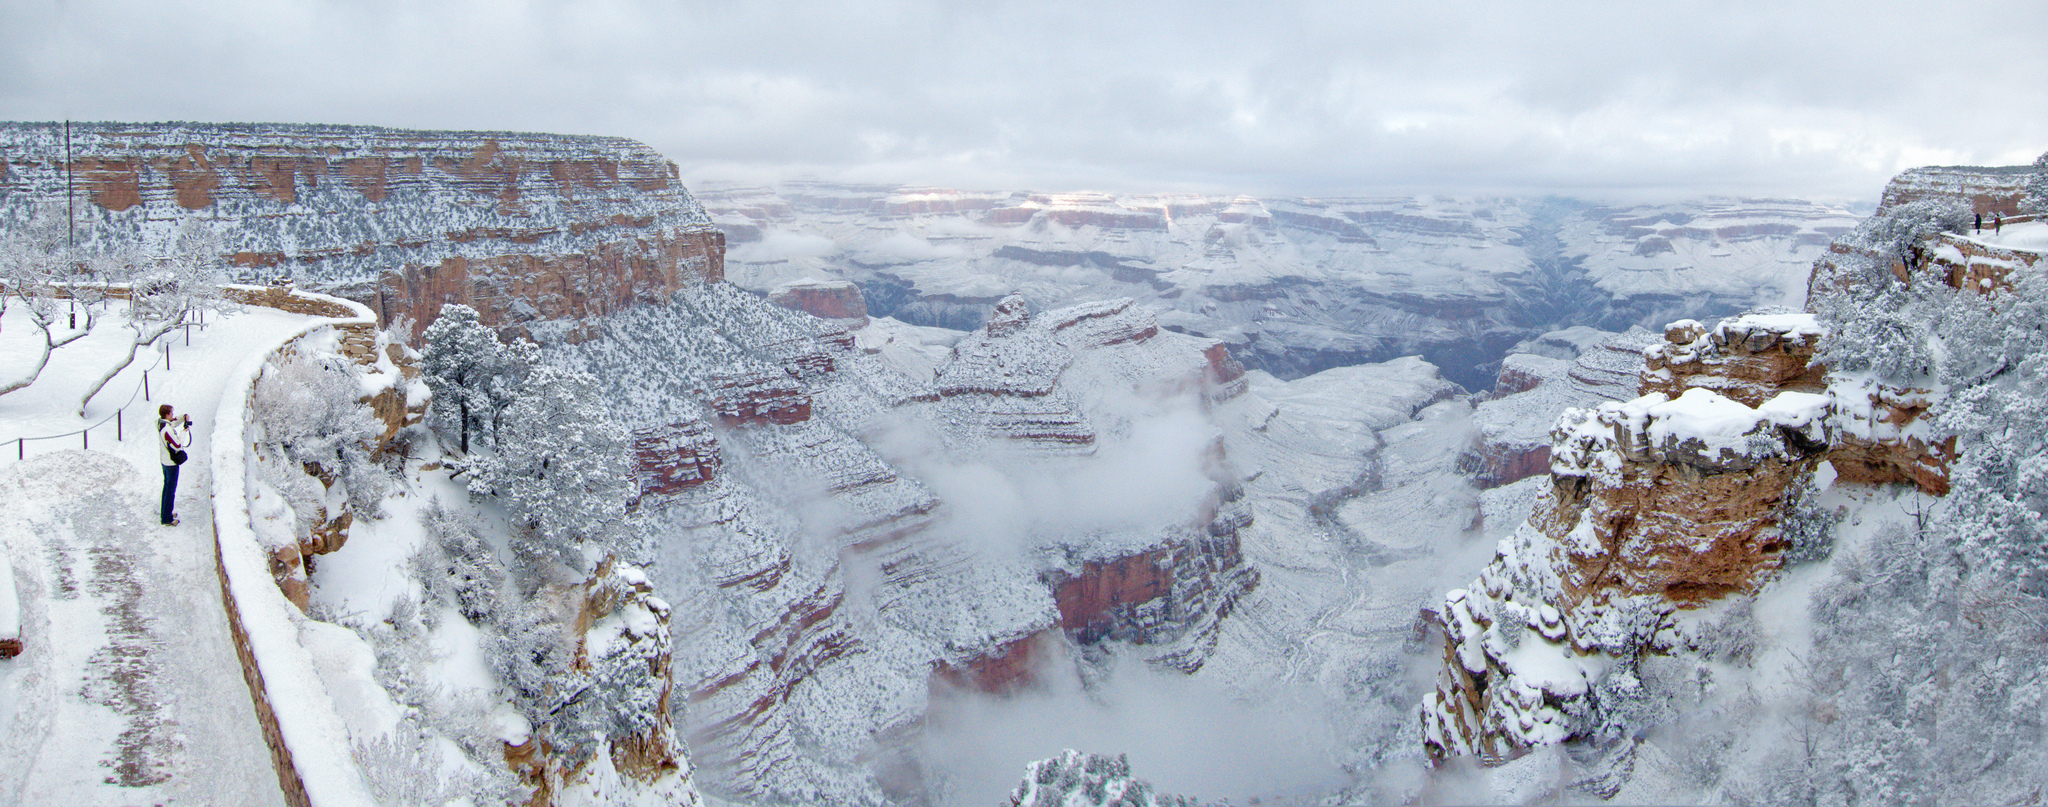 Happy New Year 2015 from Grand Canyon National Park